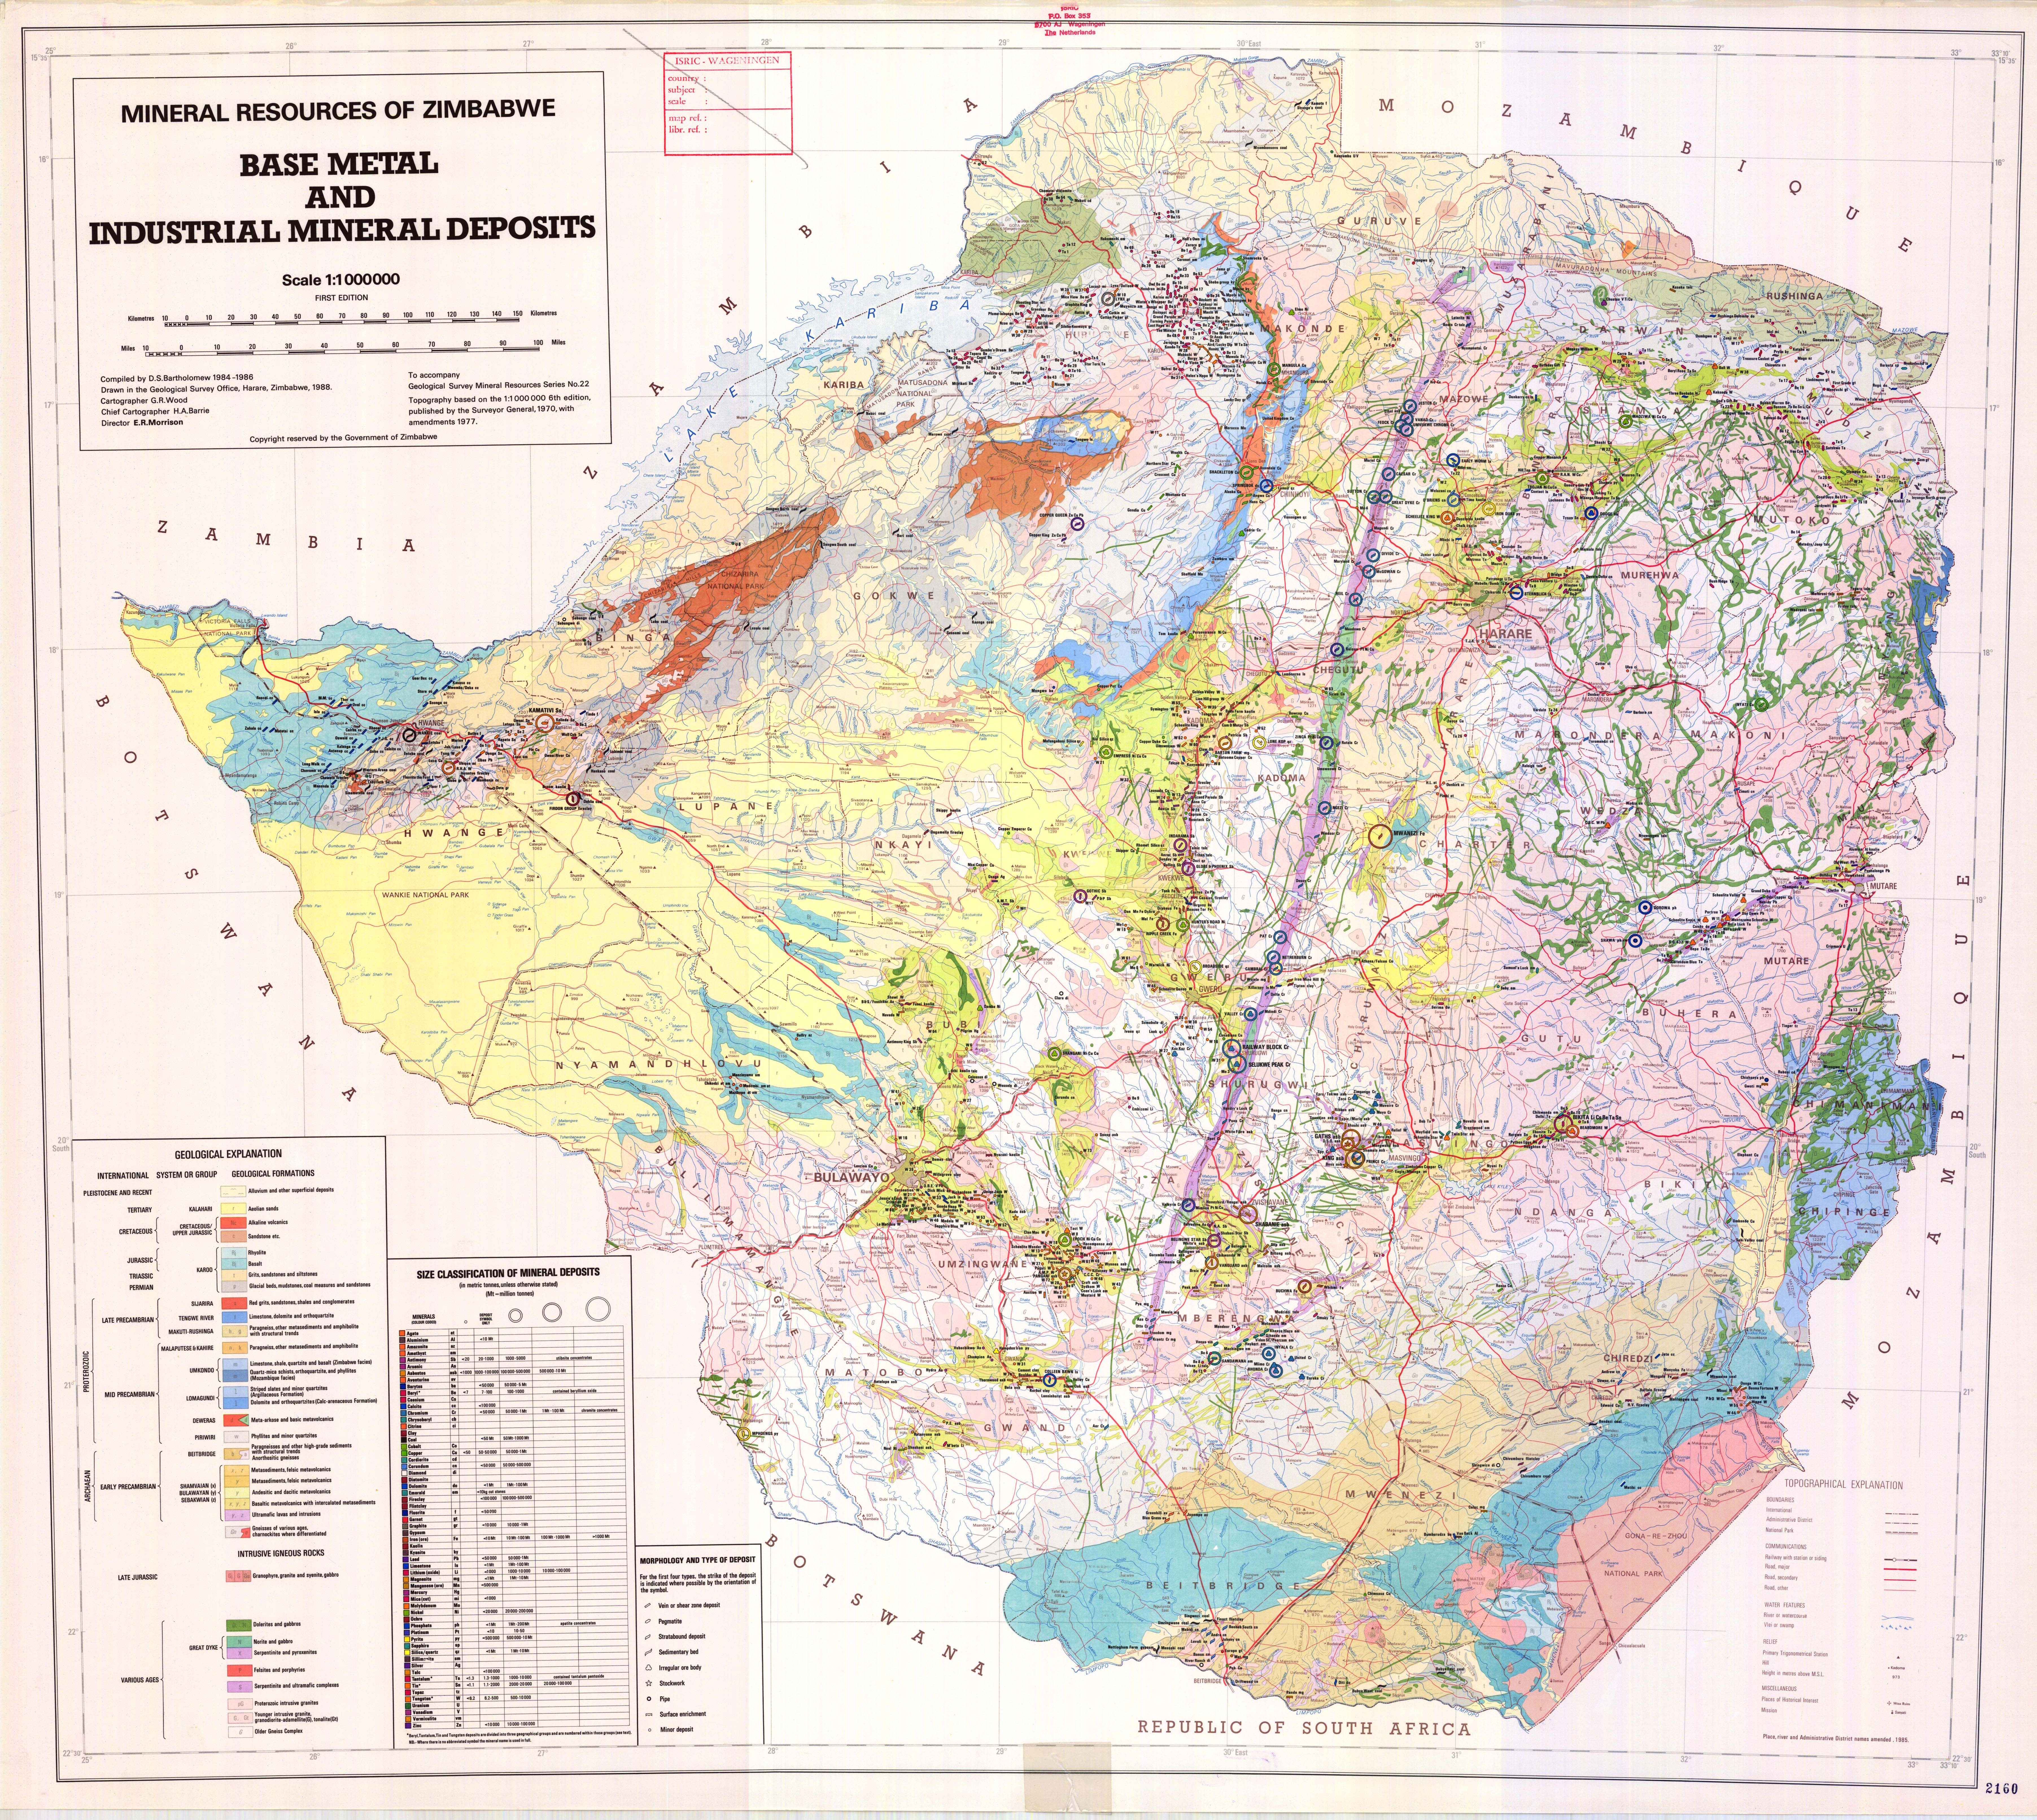 National soil maps eudasm esdac european commission mineral resources of zimbabwe base metal and indusrial mineral deposits gumiabroncs Images